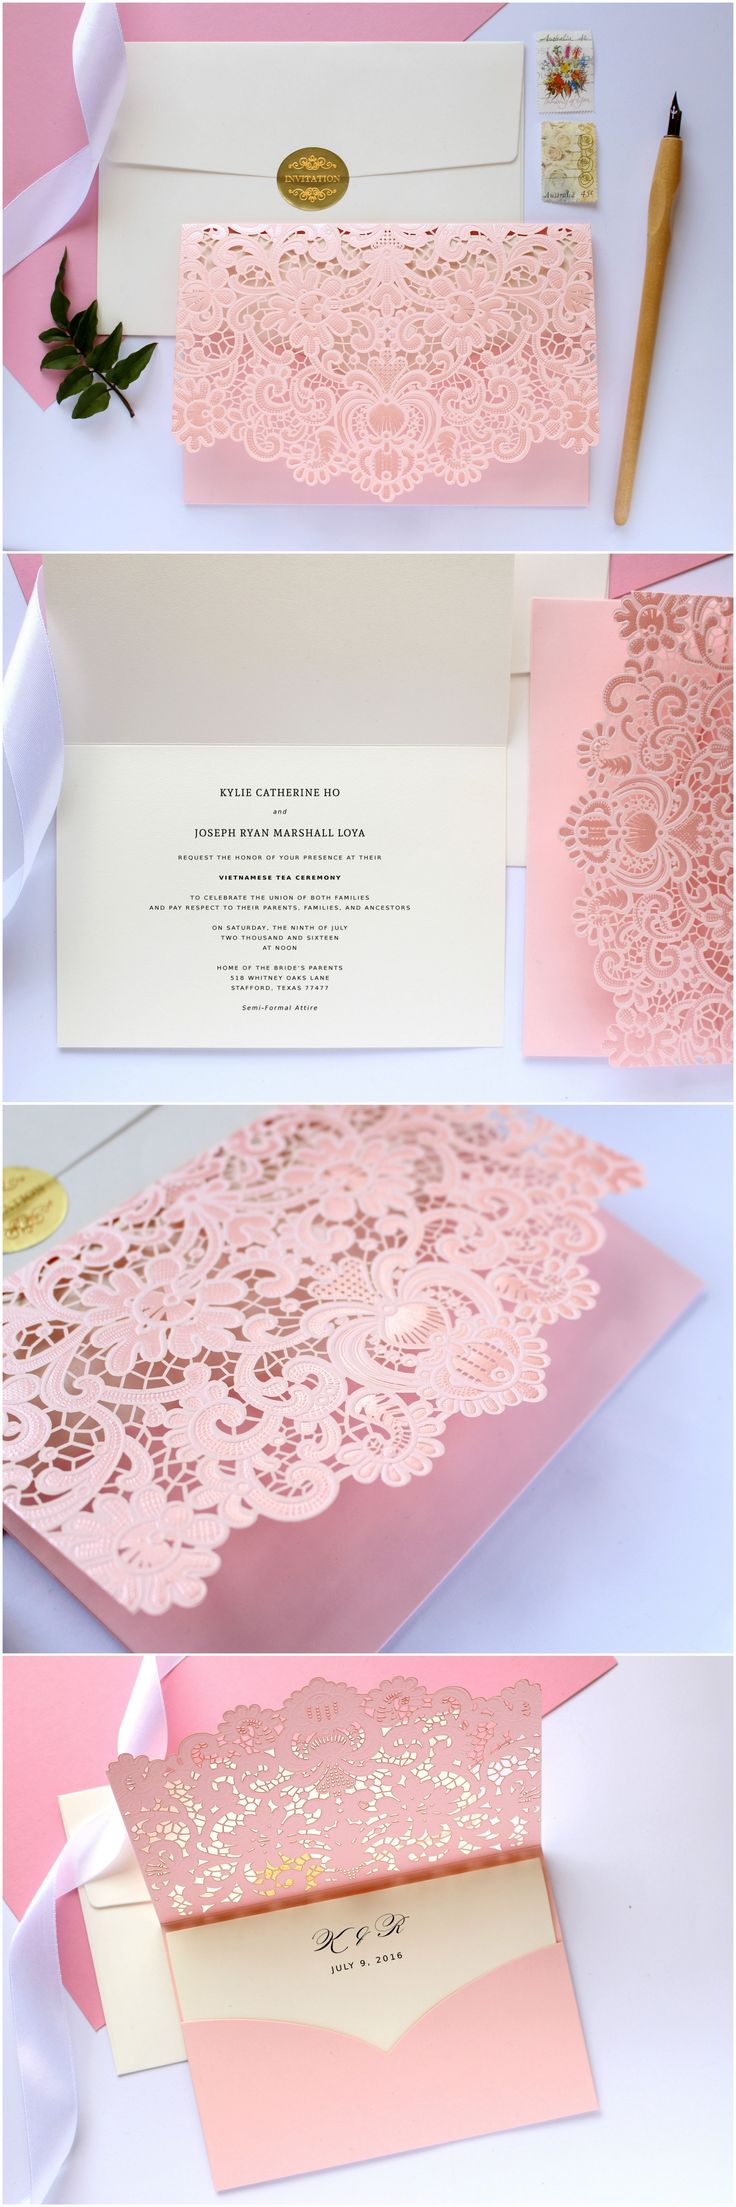 pink wedding invitations blush wedding invitation blush pink wedding laser cut wedding invitations laser cut invitation